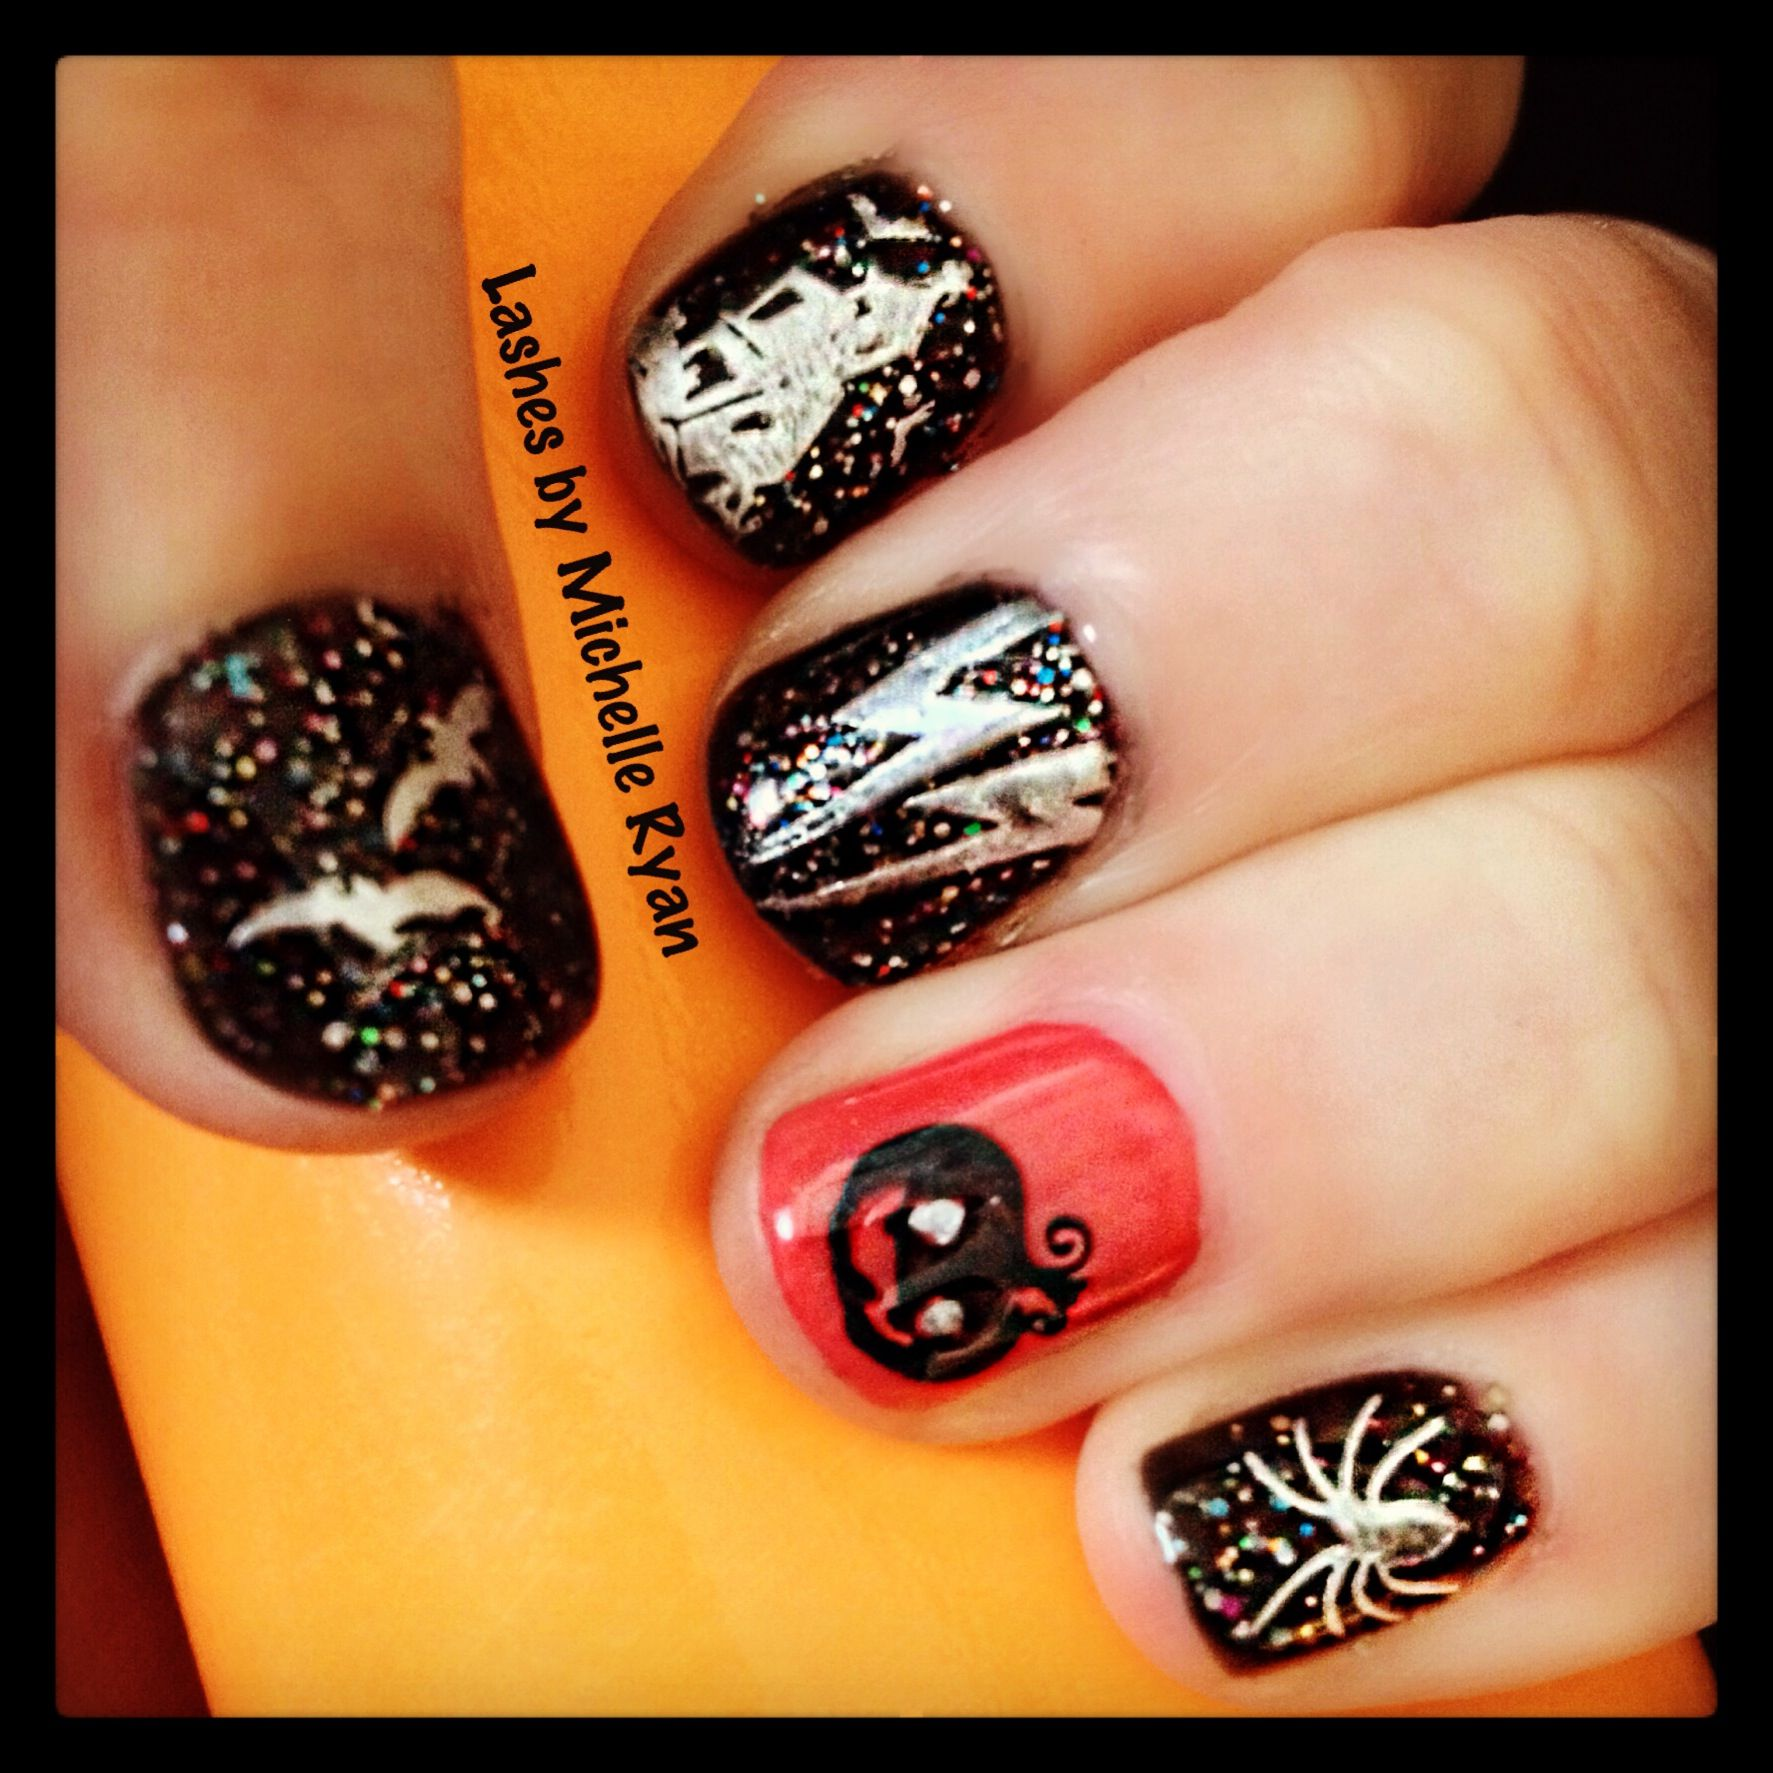 Halloween nail art in Gellux   #halloween #nailart #norwich #gellux  Find me on Facebook: lashes by Michelle Ryan #halloweennailart